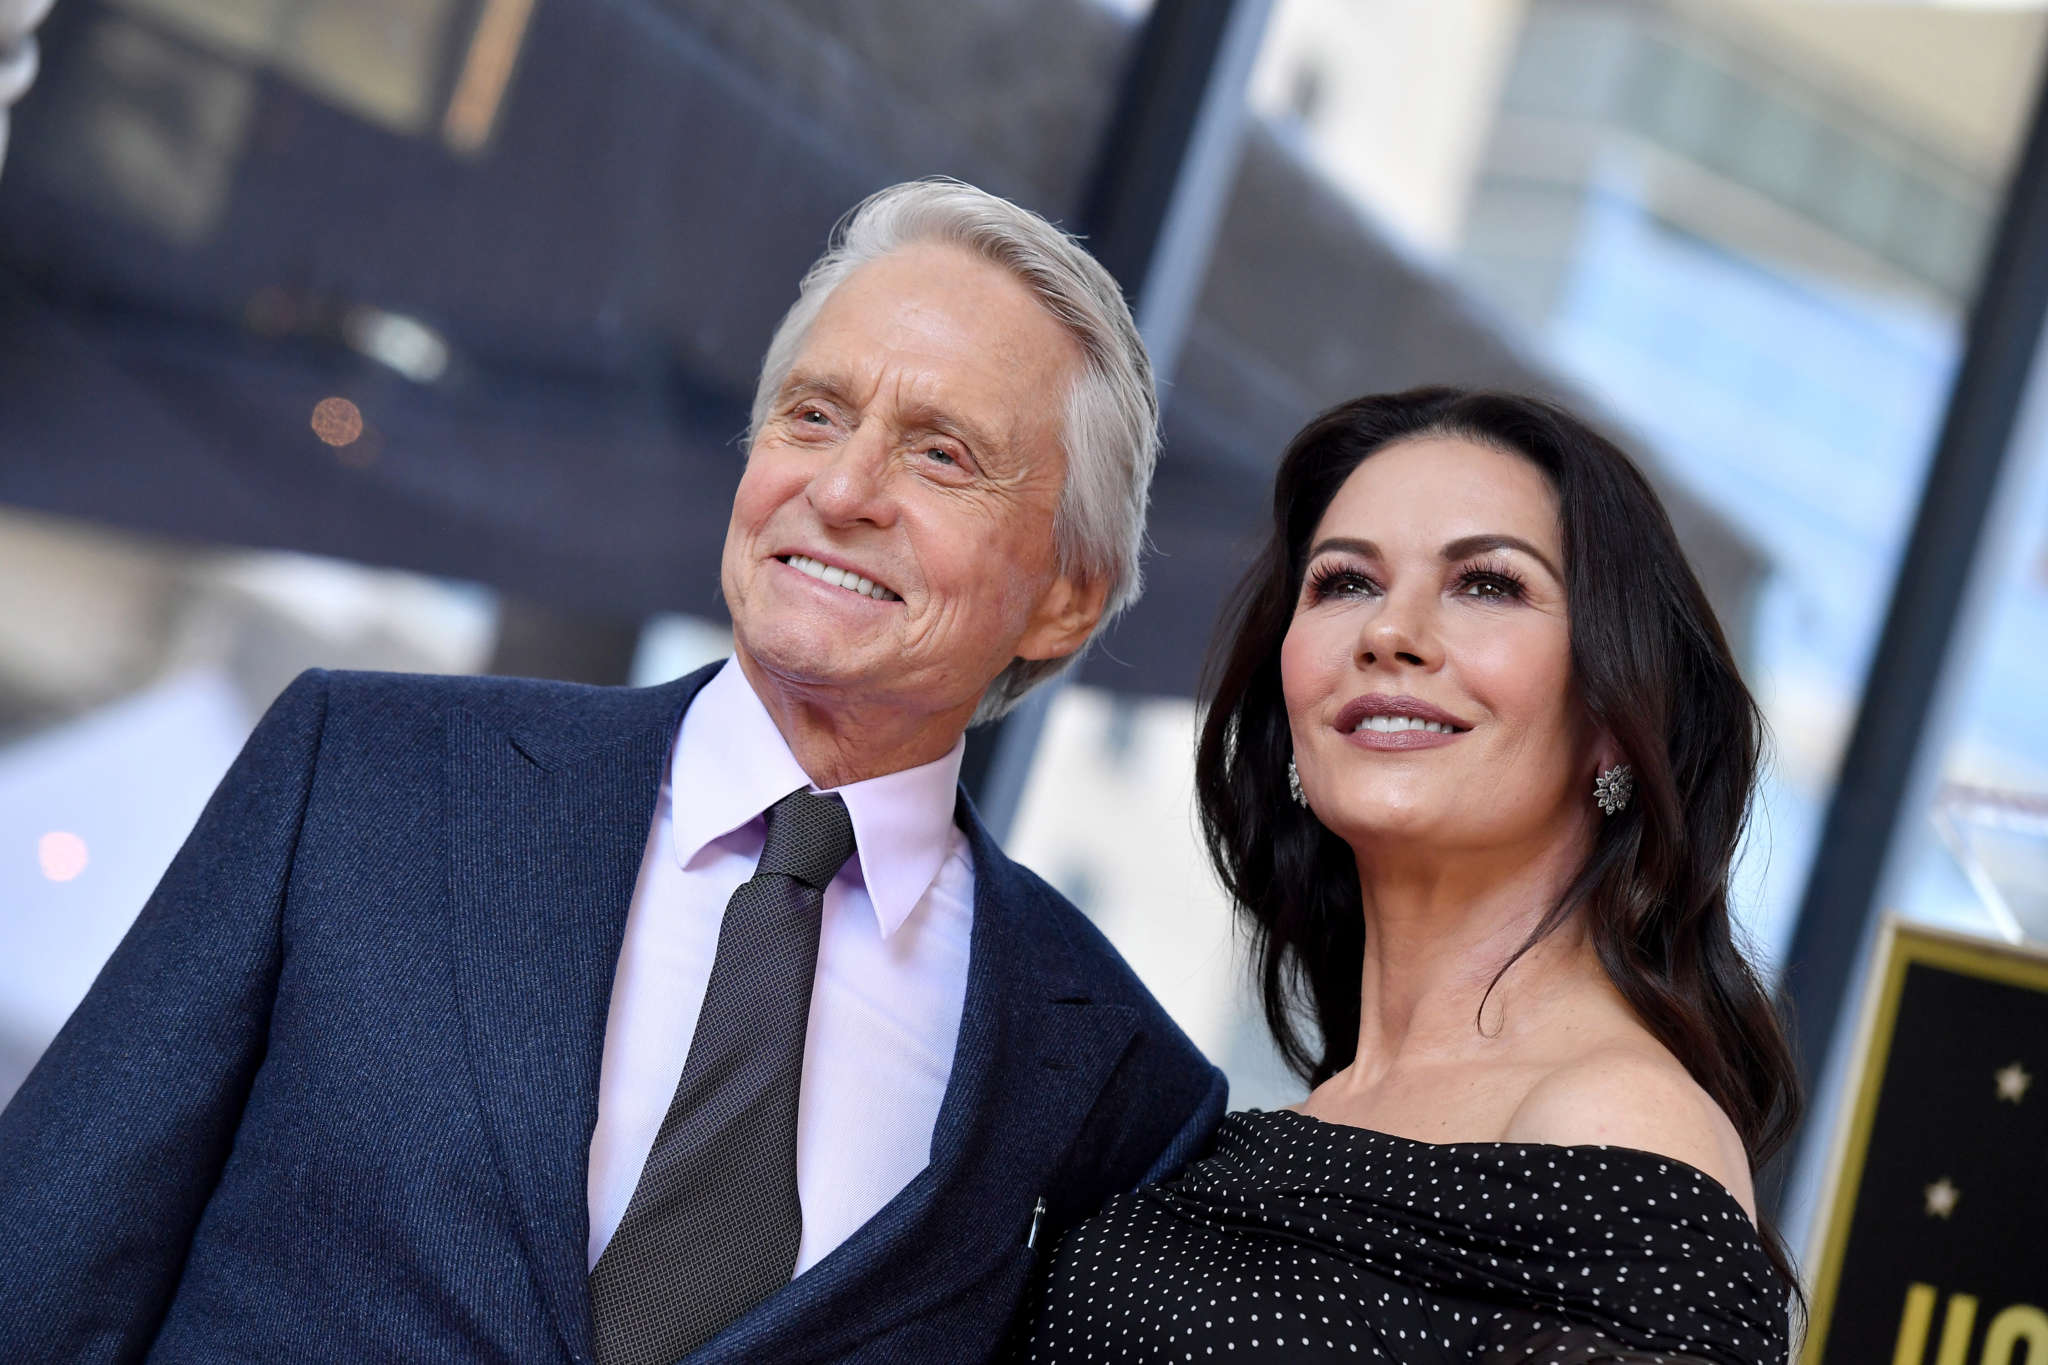 Michael Douglas And Catherine Zeta-Jones Celebrate Joint Birthday With Sweet Messages To Each Other!